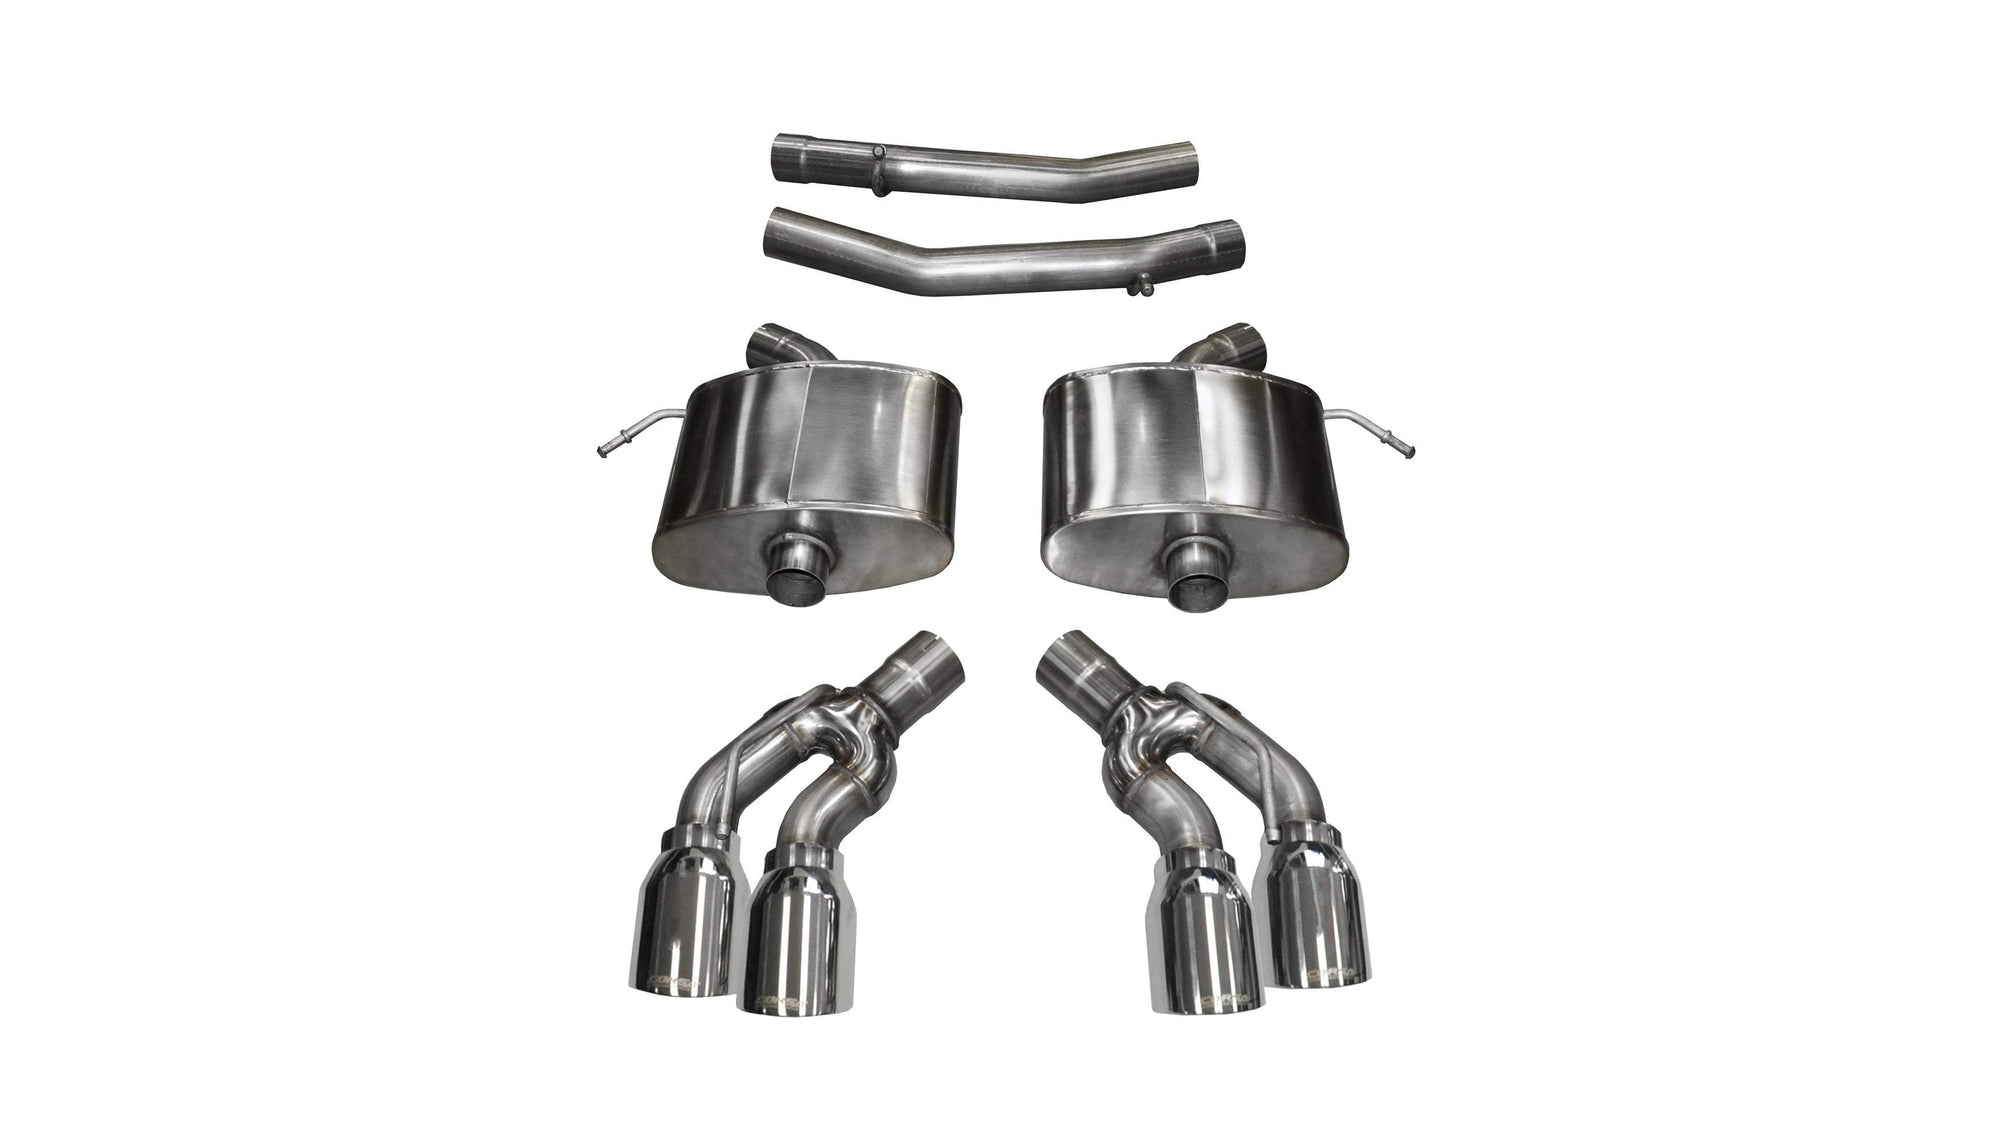 "CORSA PERFORMANCE Axle-Back Exhaust Polished / Xtreme / Dual Rear - Twin 4.0in 2016-2019 Cadillac CTS- 6.2L V8, 2.75"" Dual Rear Exit Axle-Back Exhaust System with Twin 4.0"" Tips (14358) Xtreme Sound Level"